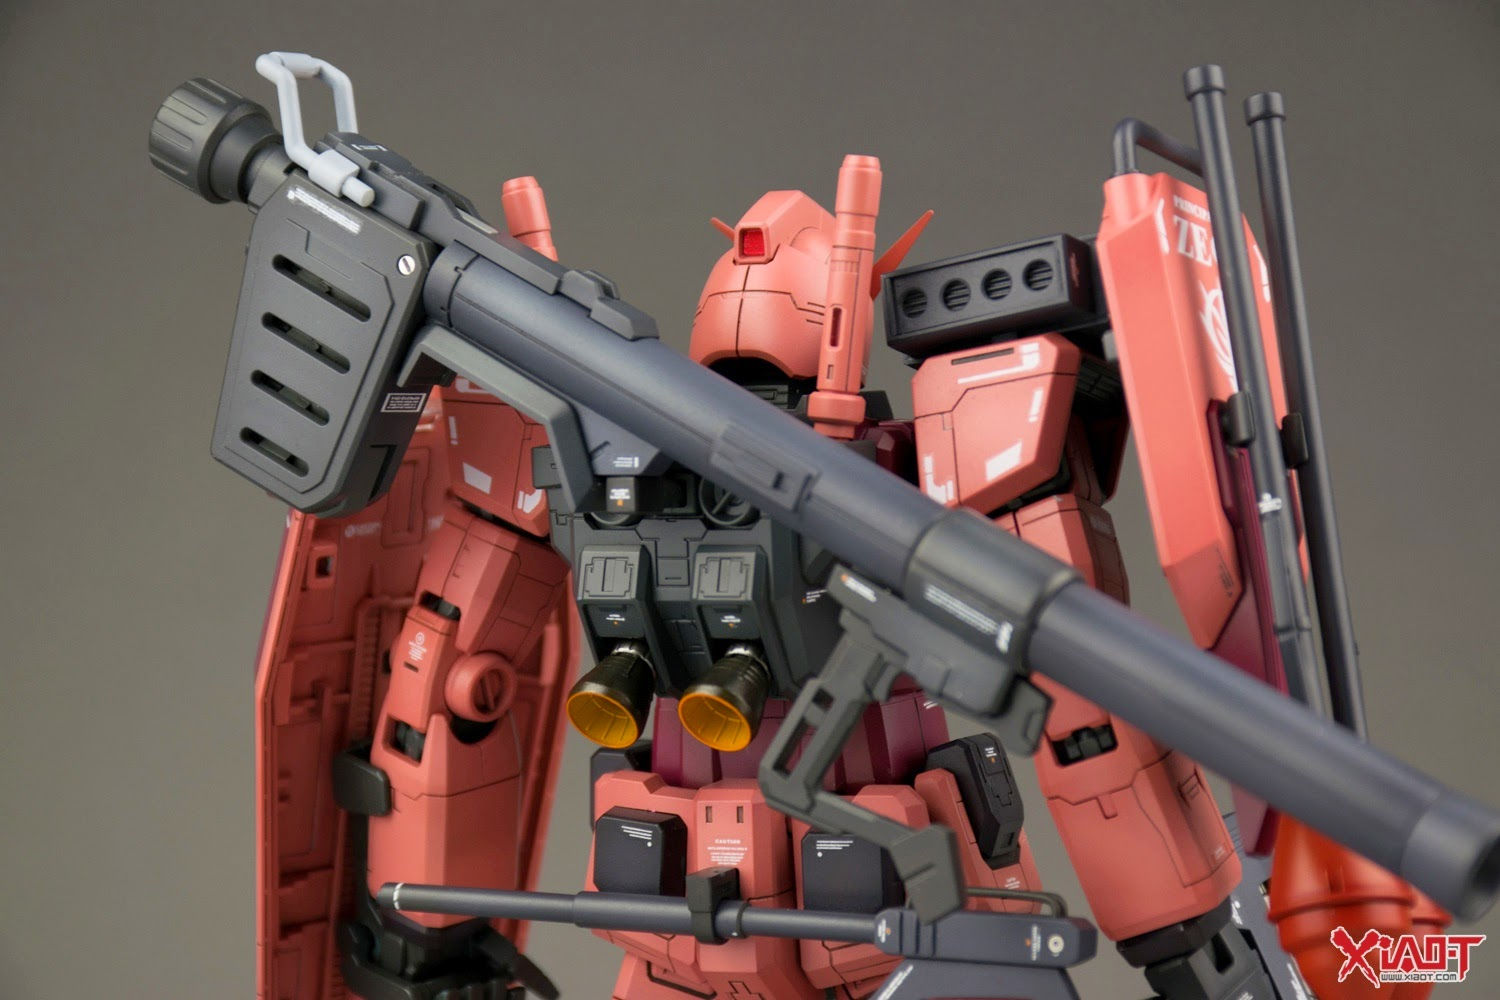 RX-78 CA MG 1/100 RX-78/C.A. Char Aznable's Customized Gundam - Custom Build